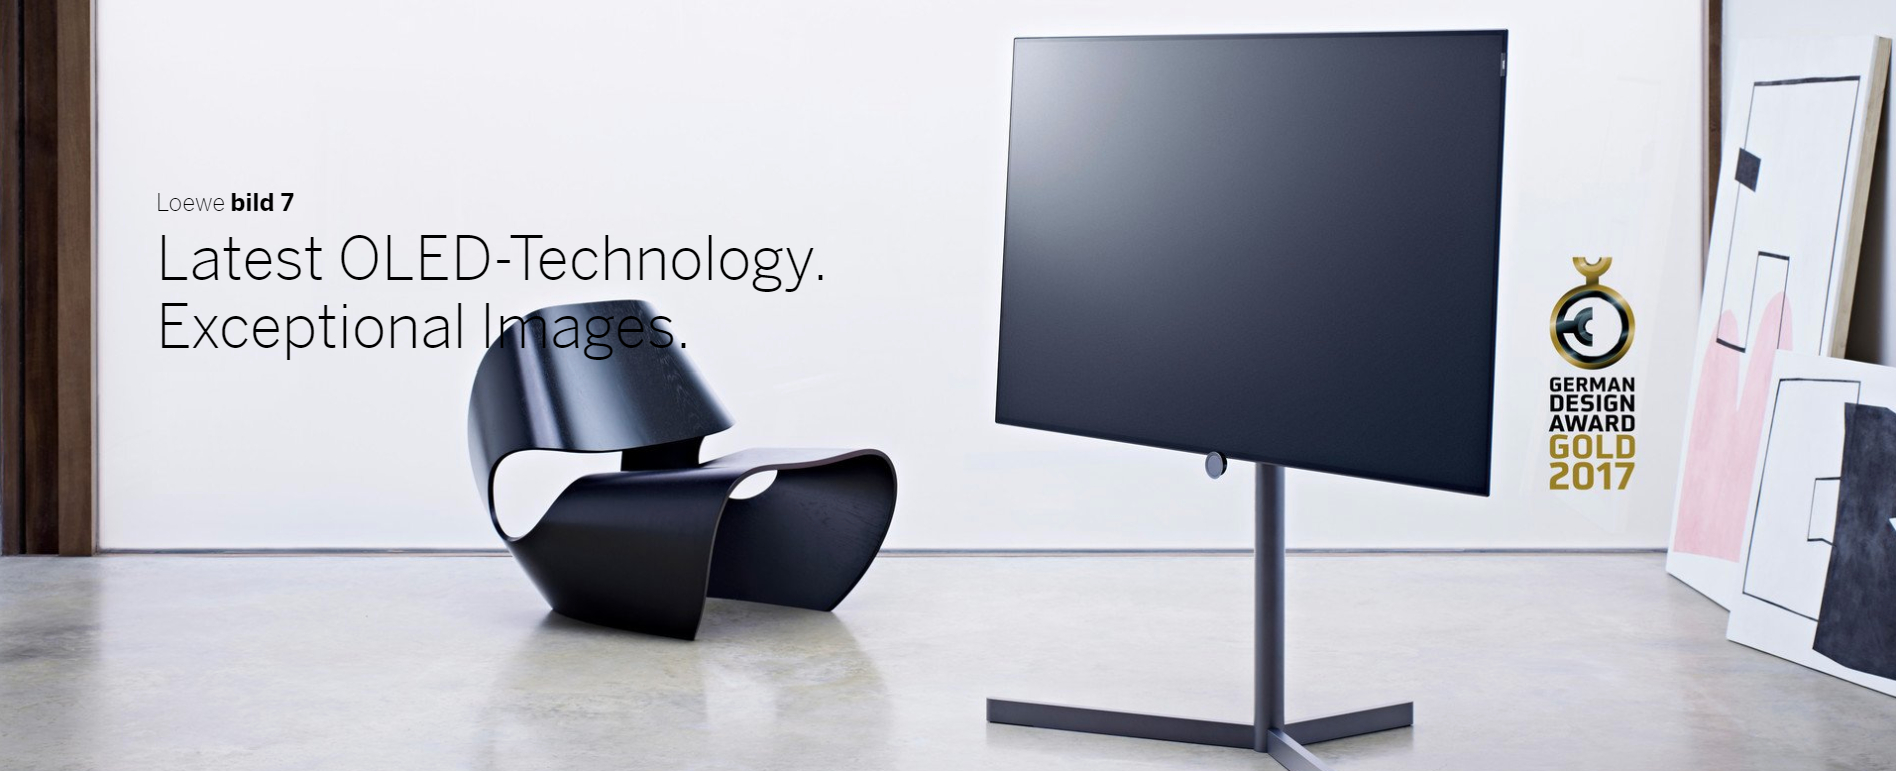 Loewe Bild 7 - Latest OLED Technology with exceptional images